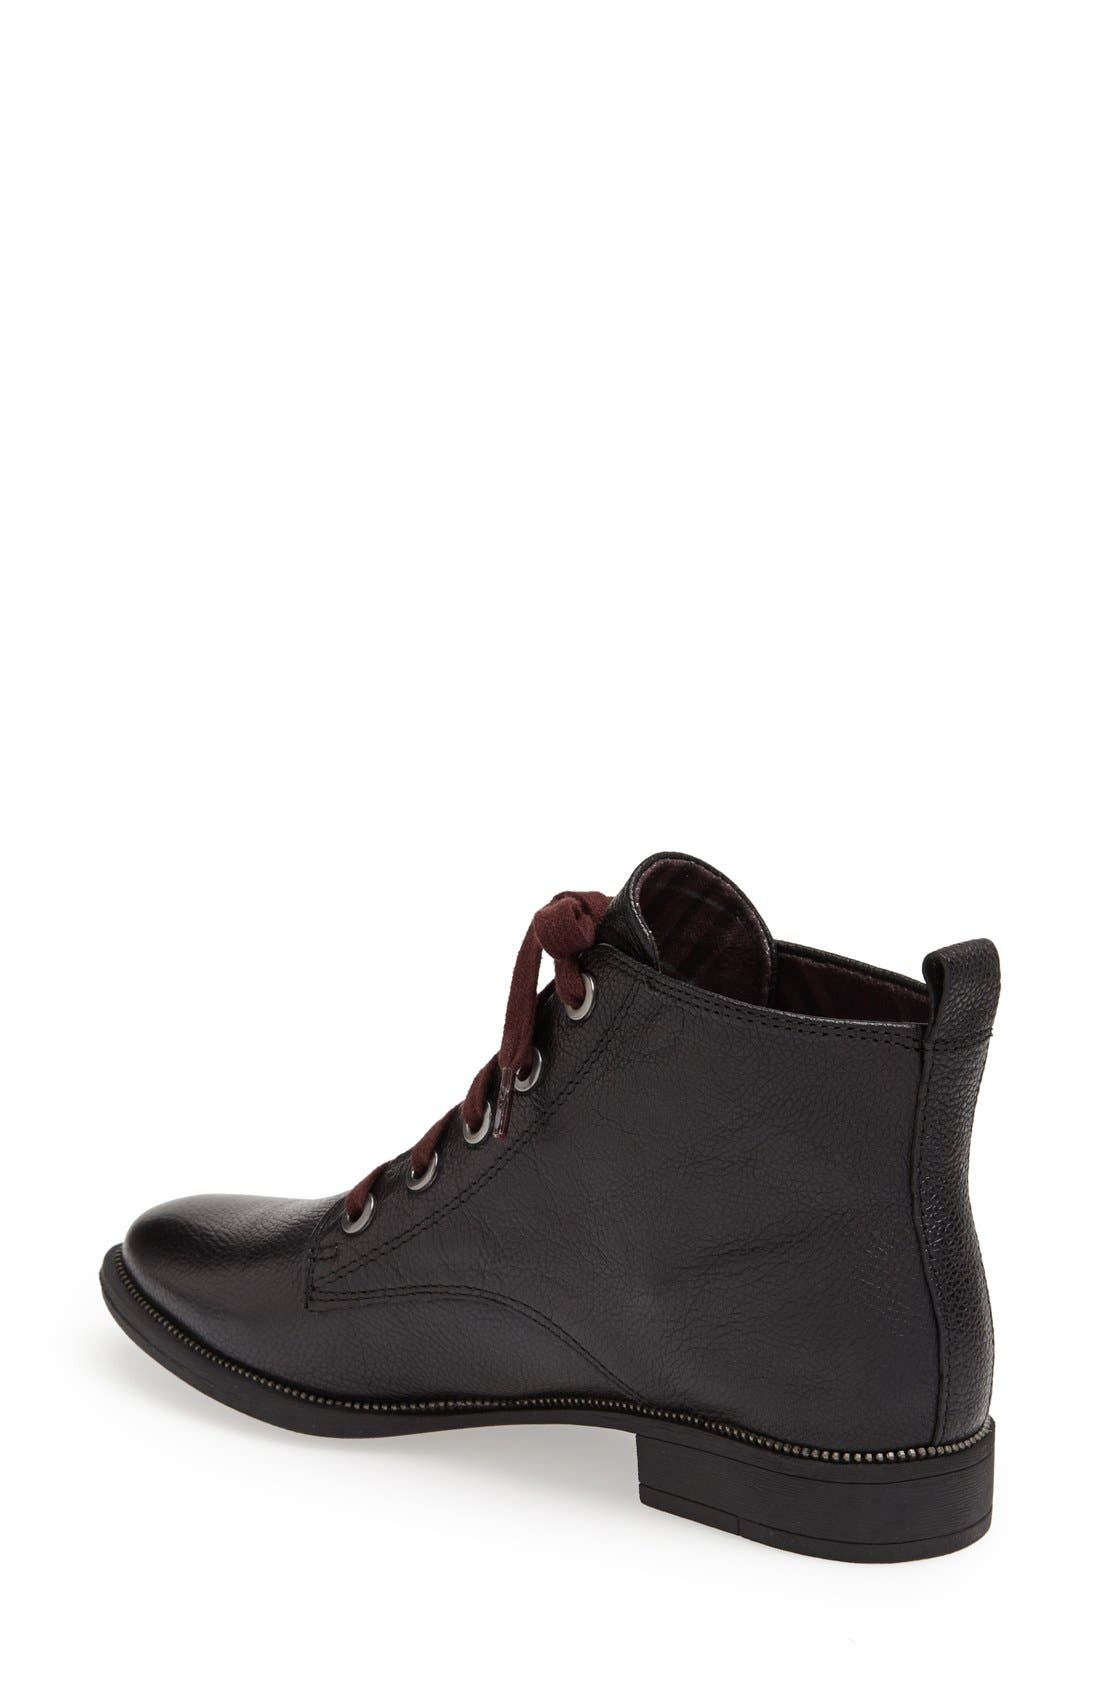 Alternate Image 2  - Circus by Sam Edelman 'Charlie' Boot (Women)